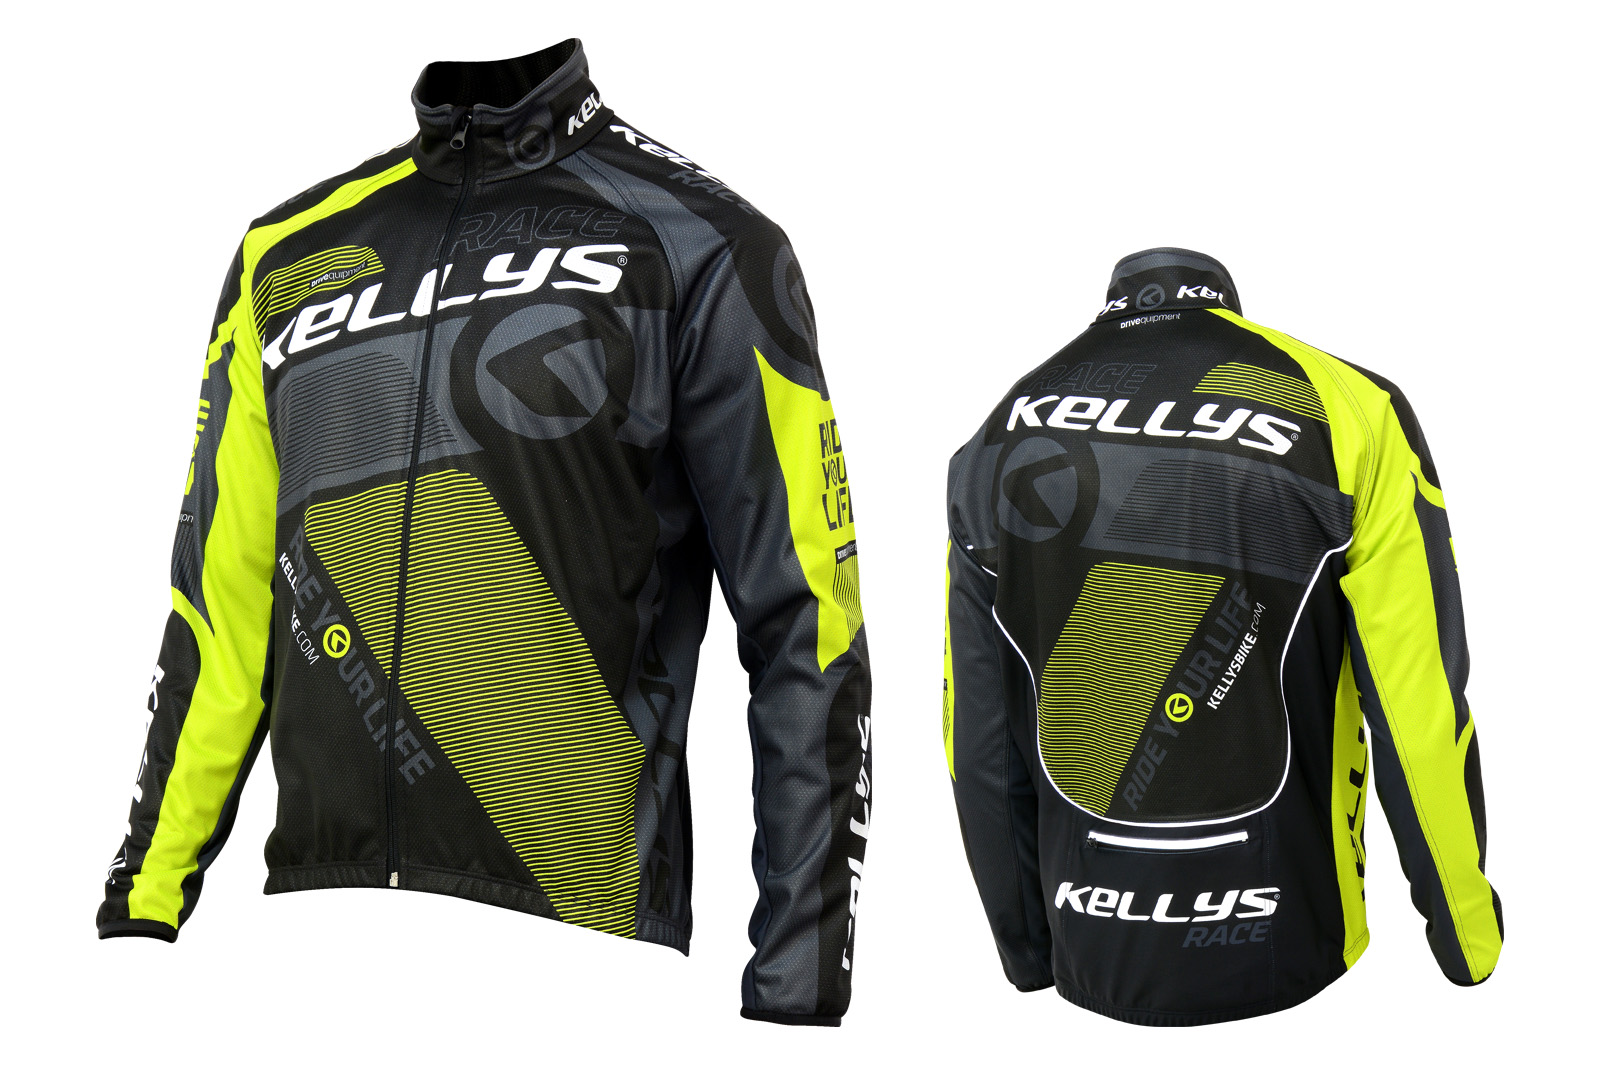 Jacke KELLYS PRO Race ISOWIND - S - Sport Cycling Meindl - professional cycling